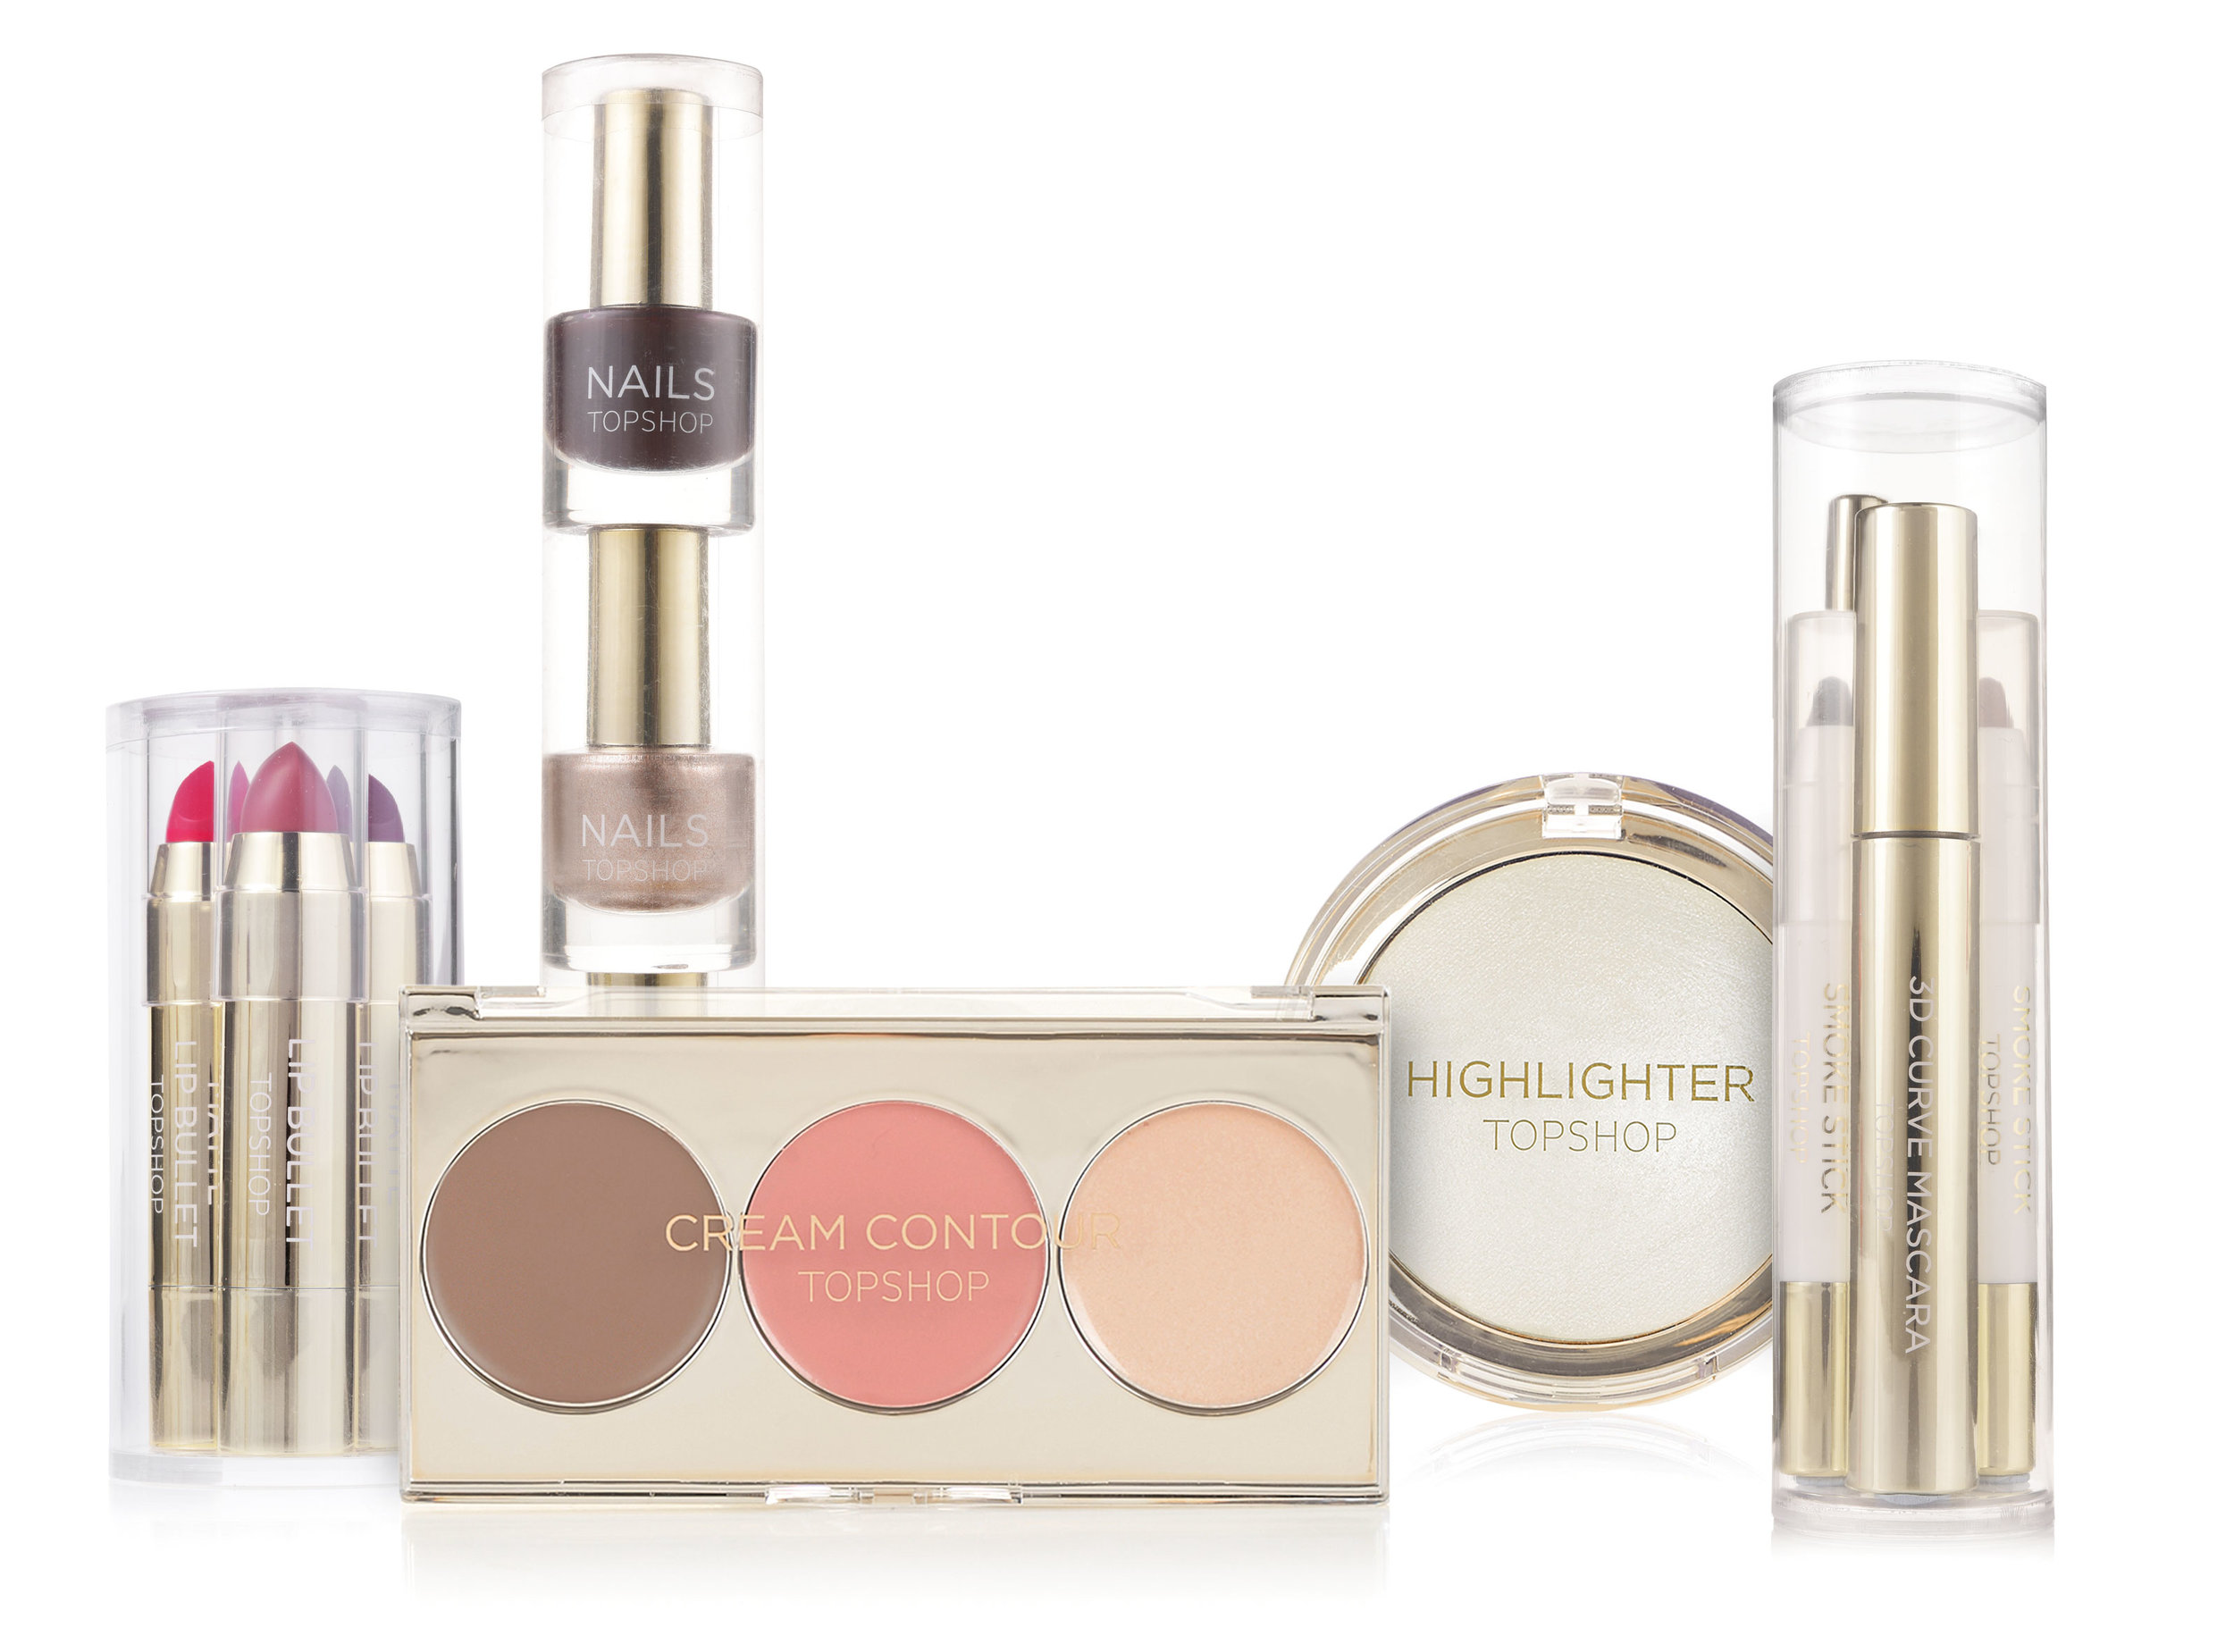 Topshopbeauty Holiday Collection 2016